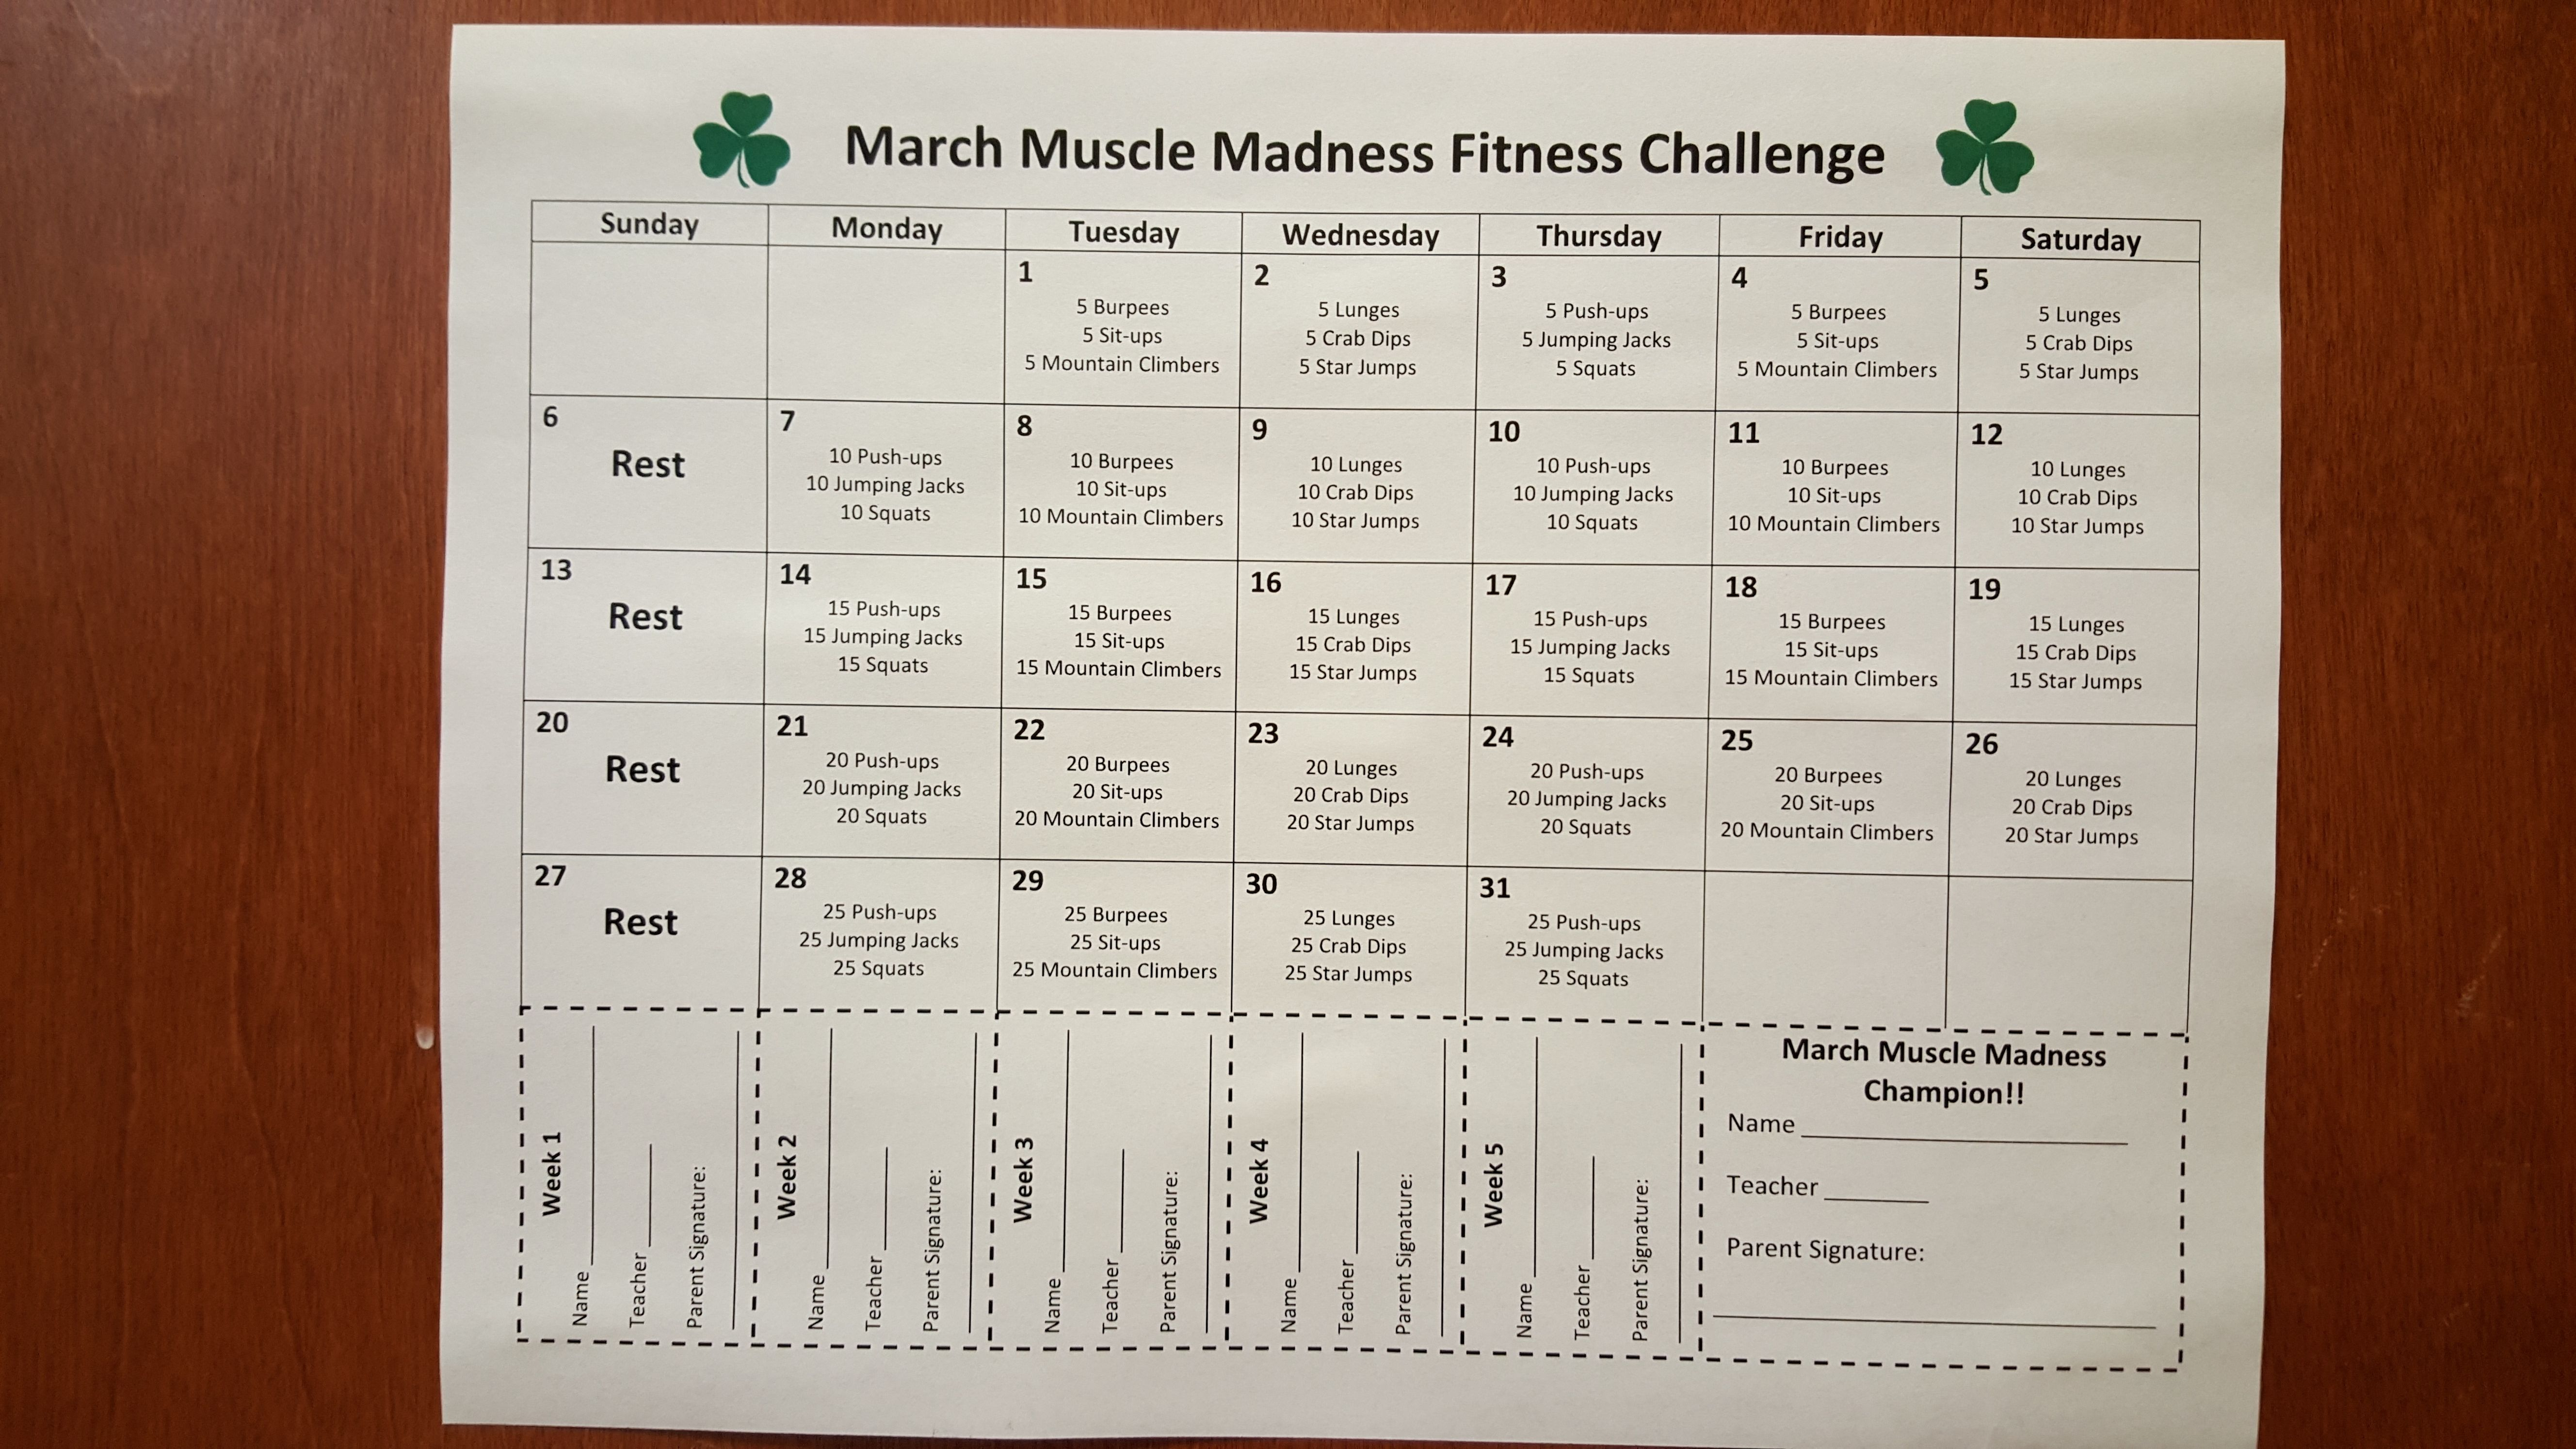 March Muscle Madness Fitness Challenge Getting Students And Families Exercising At H Physical Activities For Kids Physical Education Games Physical Education